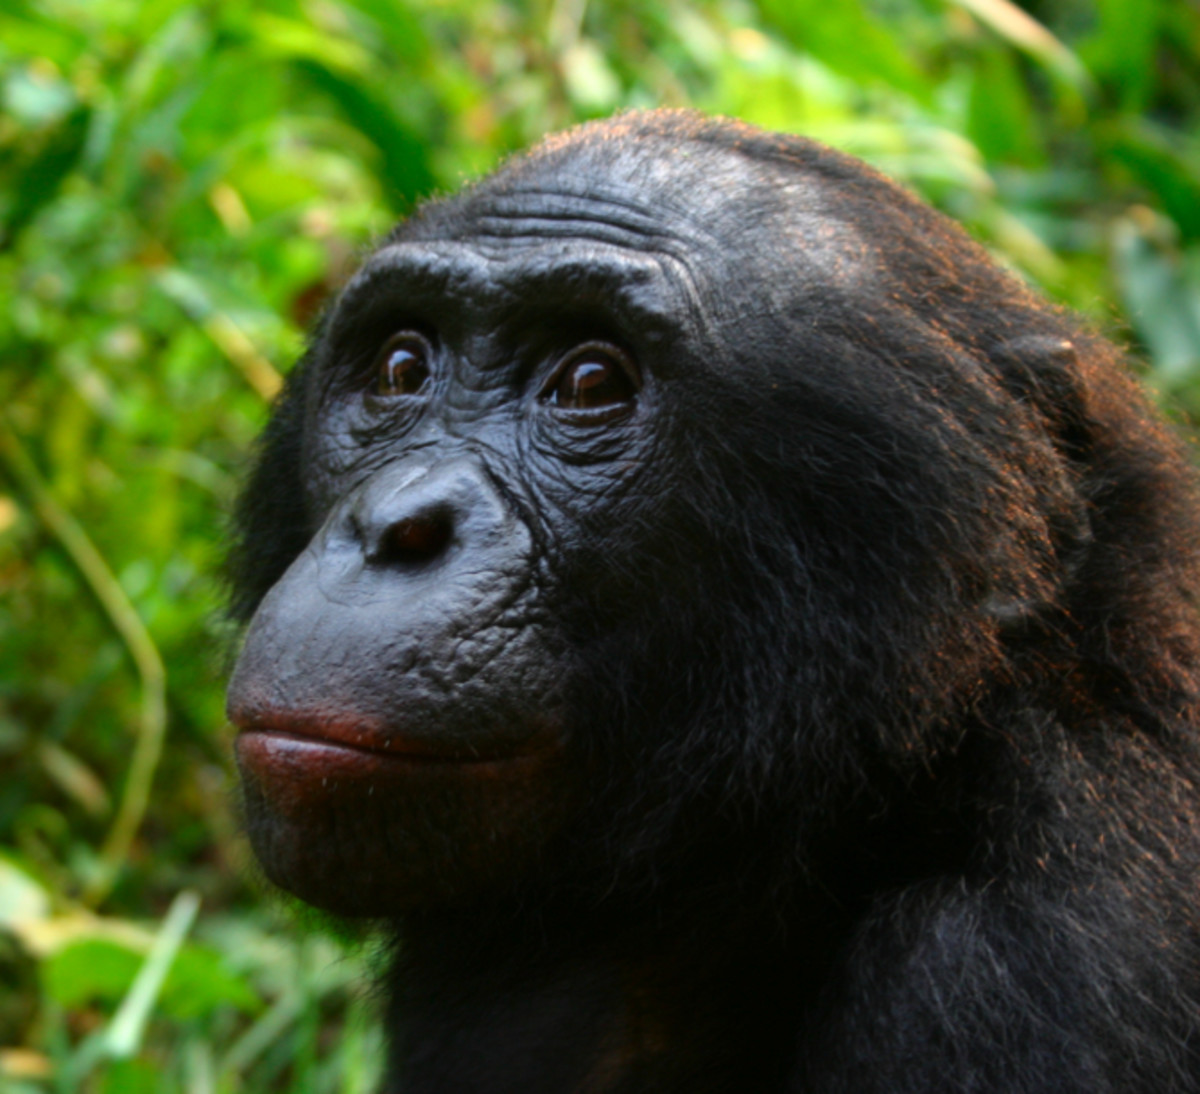 Some Bonobo's have been taught sign language that equals or betters Genie's ability.